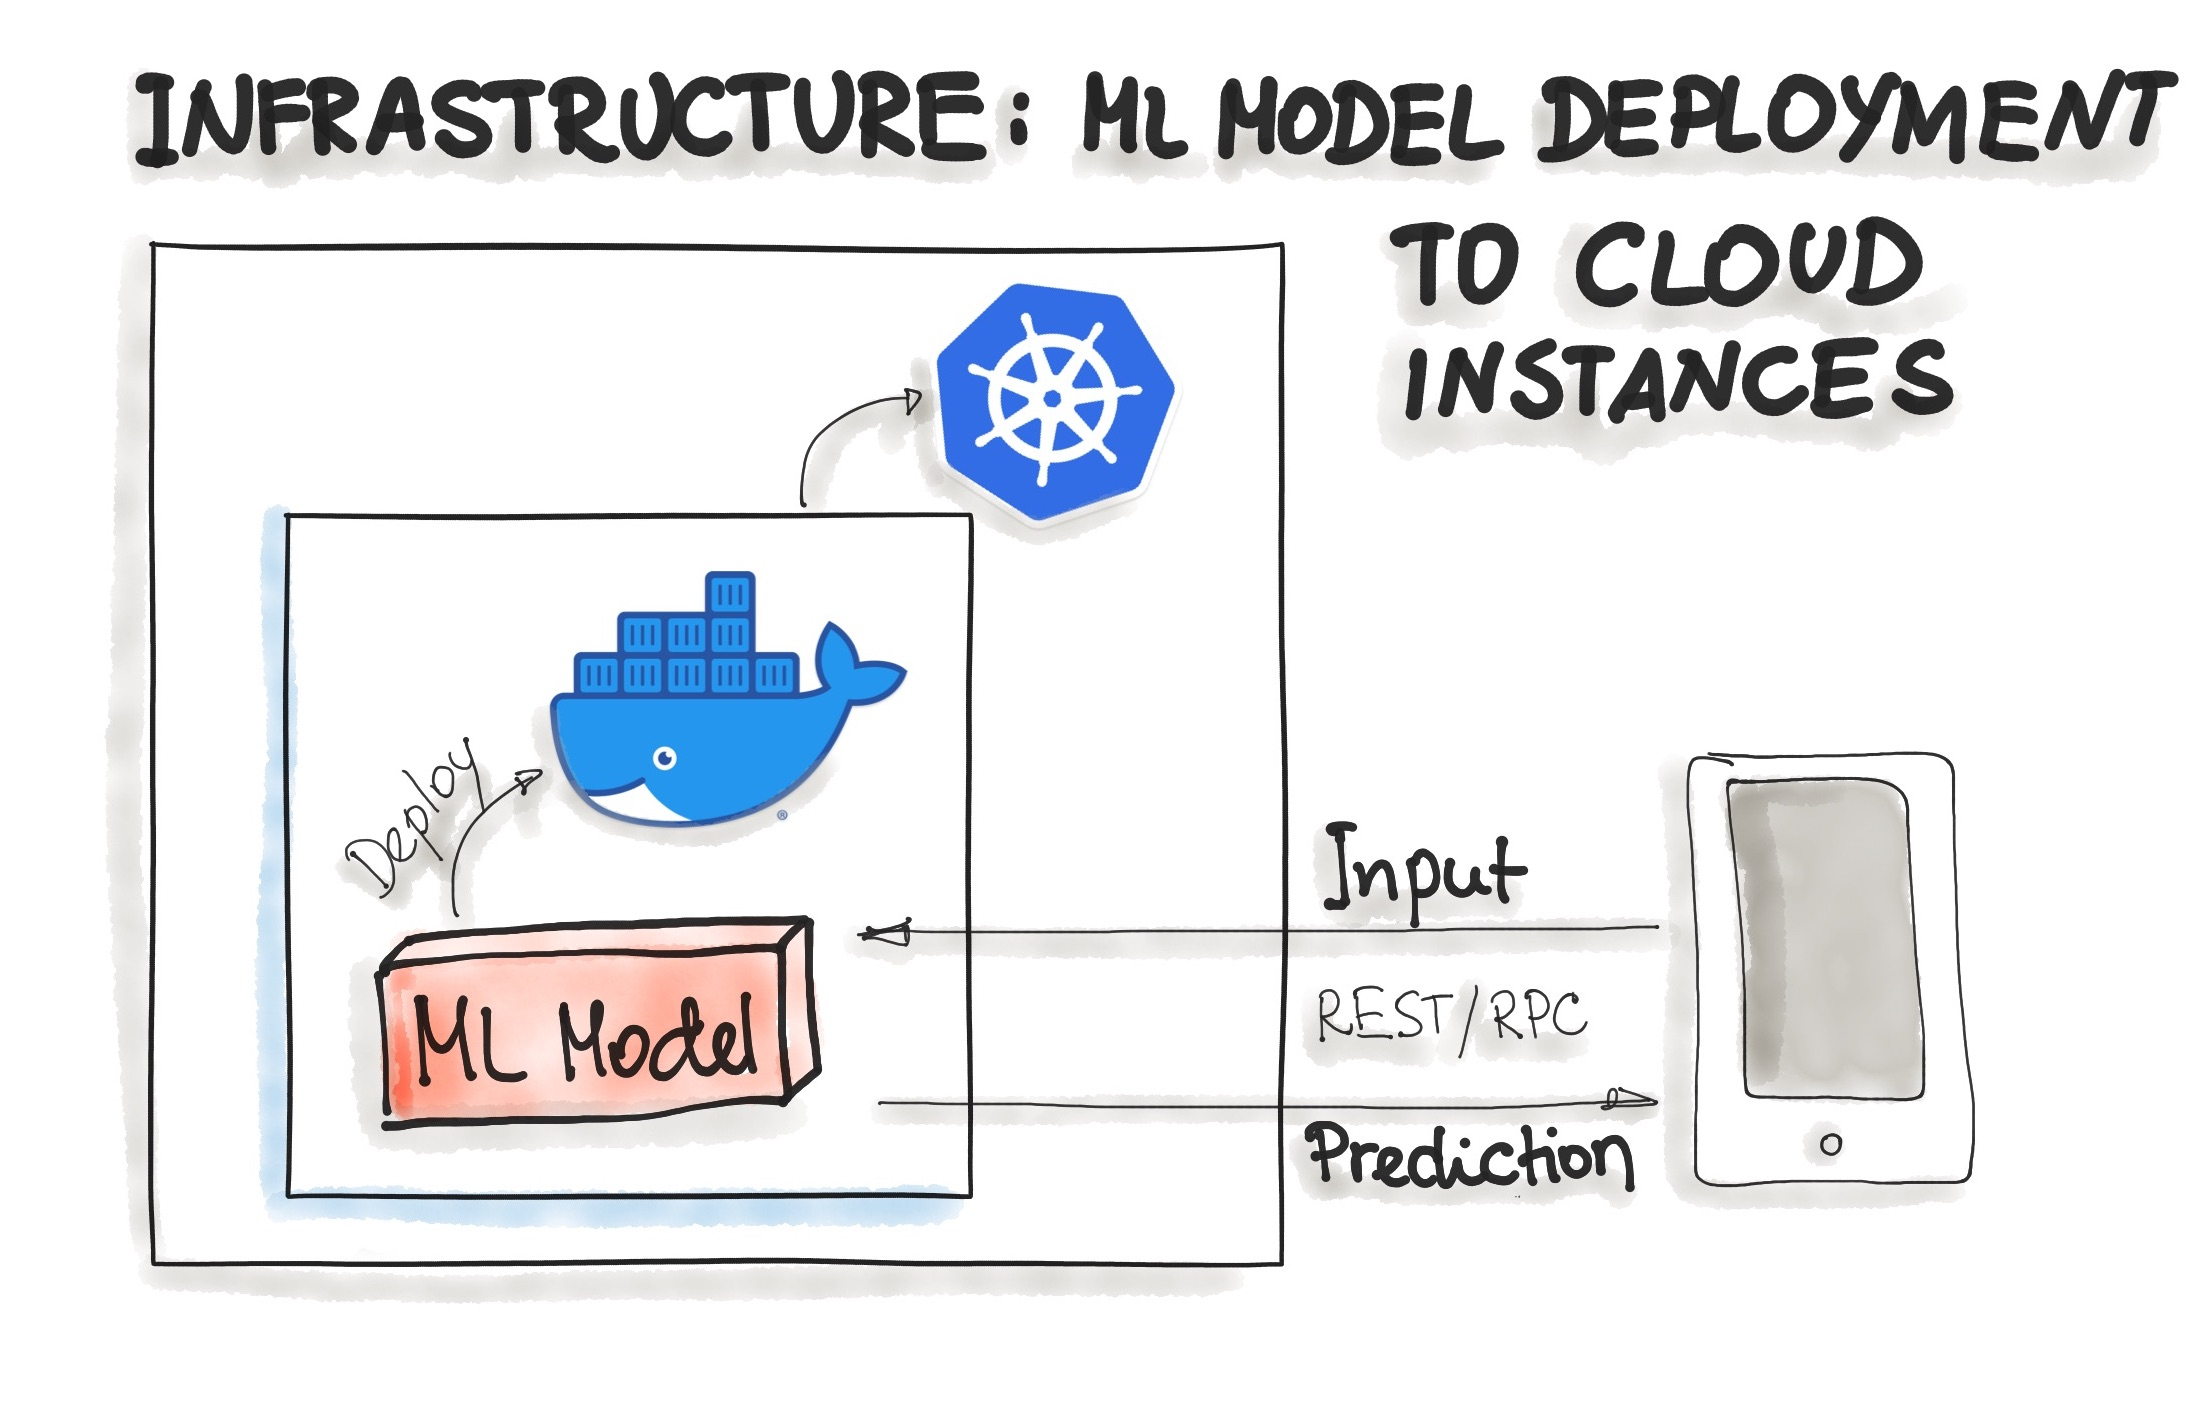 Docker Infrastructure for Model Deployment